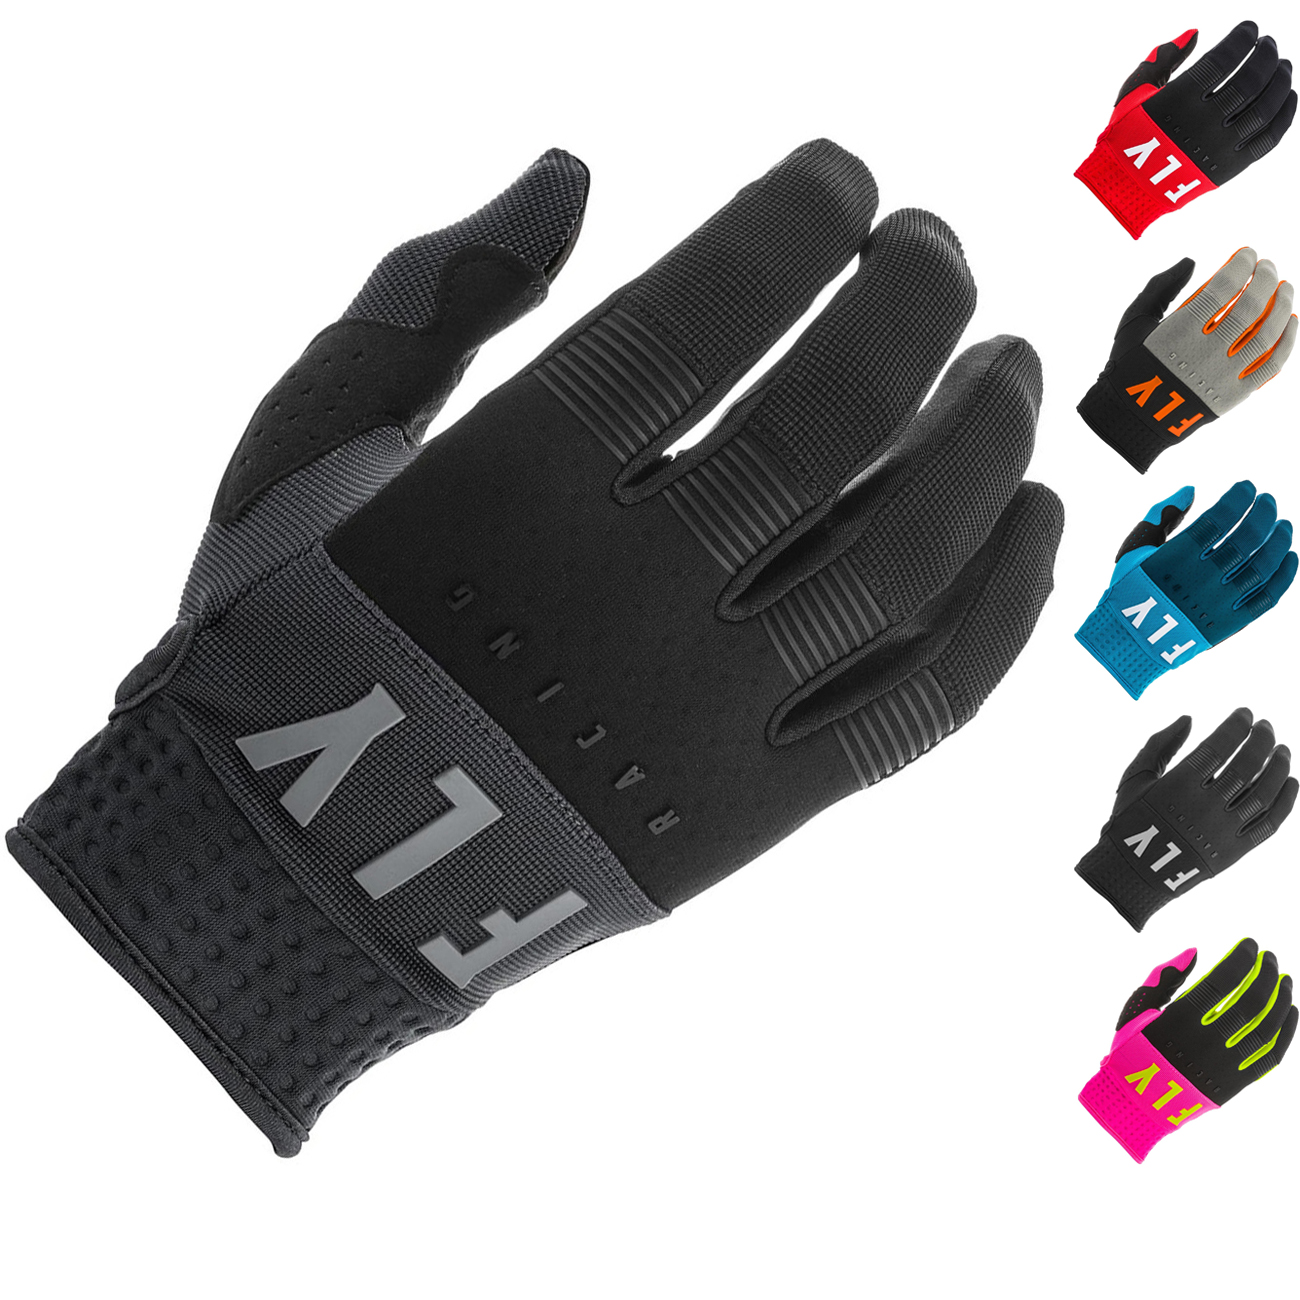 Padded Palm Silicone Grip Reinforced Thumb FLY Racing Youth F-16 Gloves Protective Neoprene Motorcycle Hand Gear